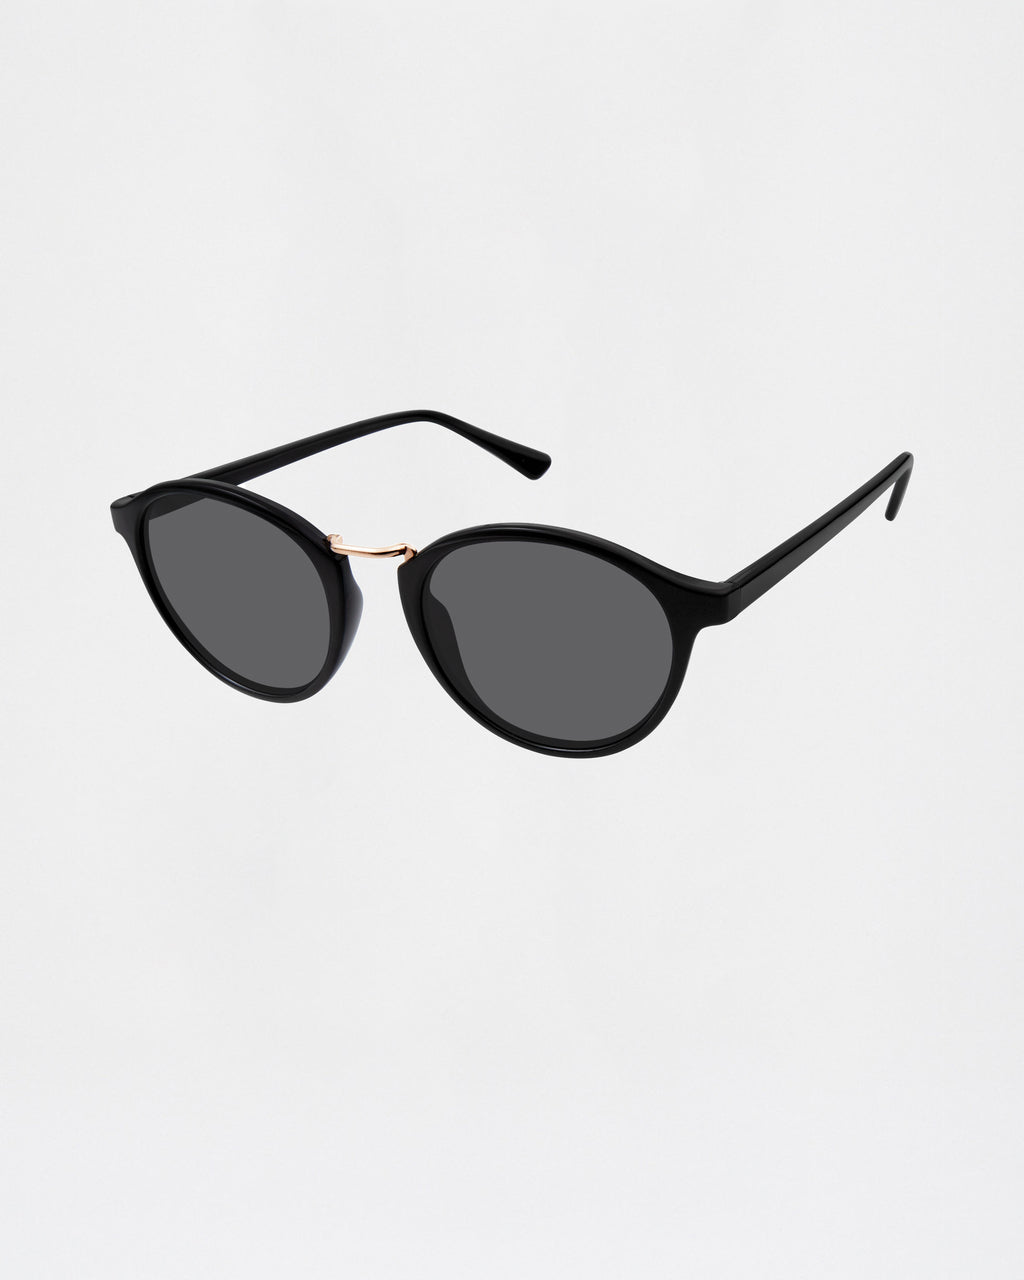 NMNYCA1 - CANYON LAKe SUNGLASSES - accessories - sunglasses - BLACK AND TORTOISE ROUND FRAME 100% UVA/UVB